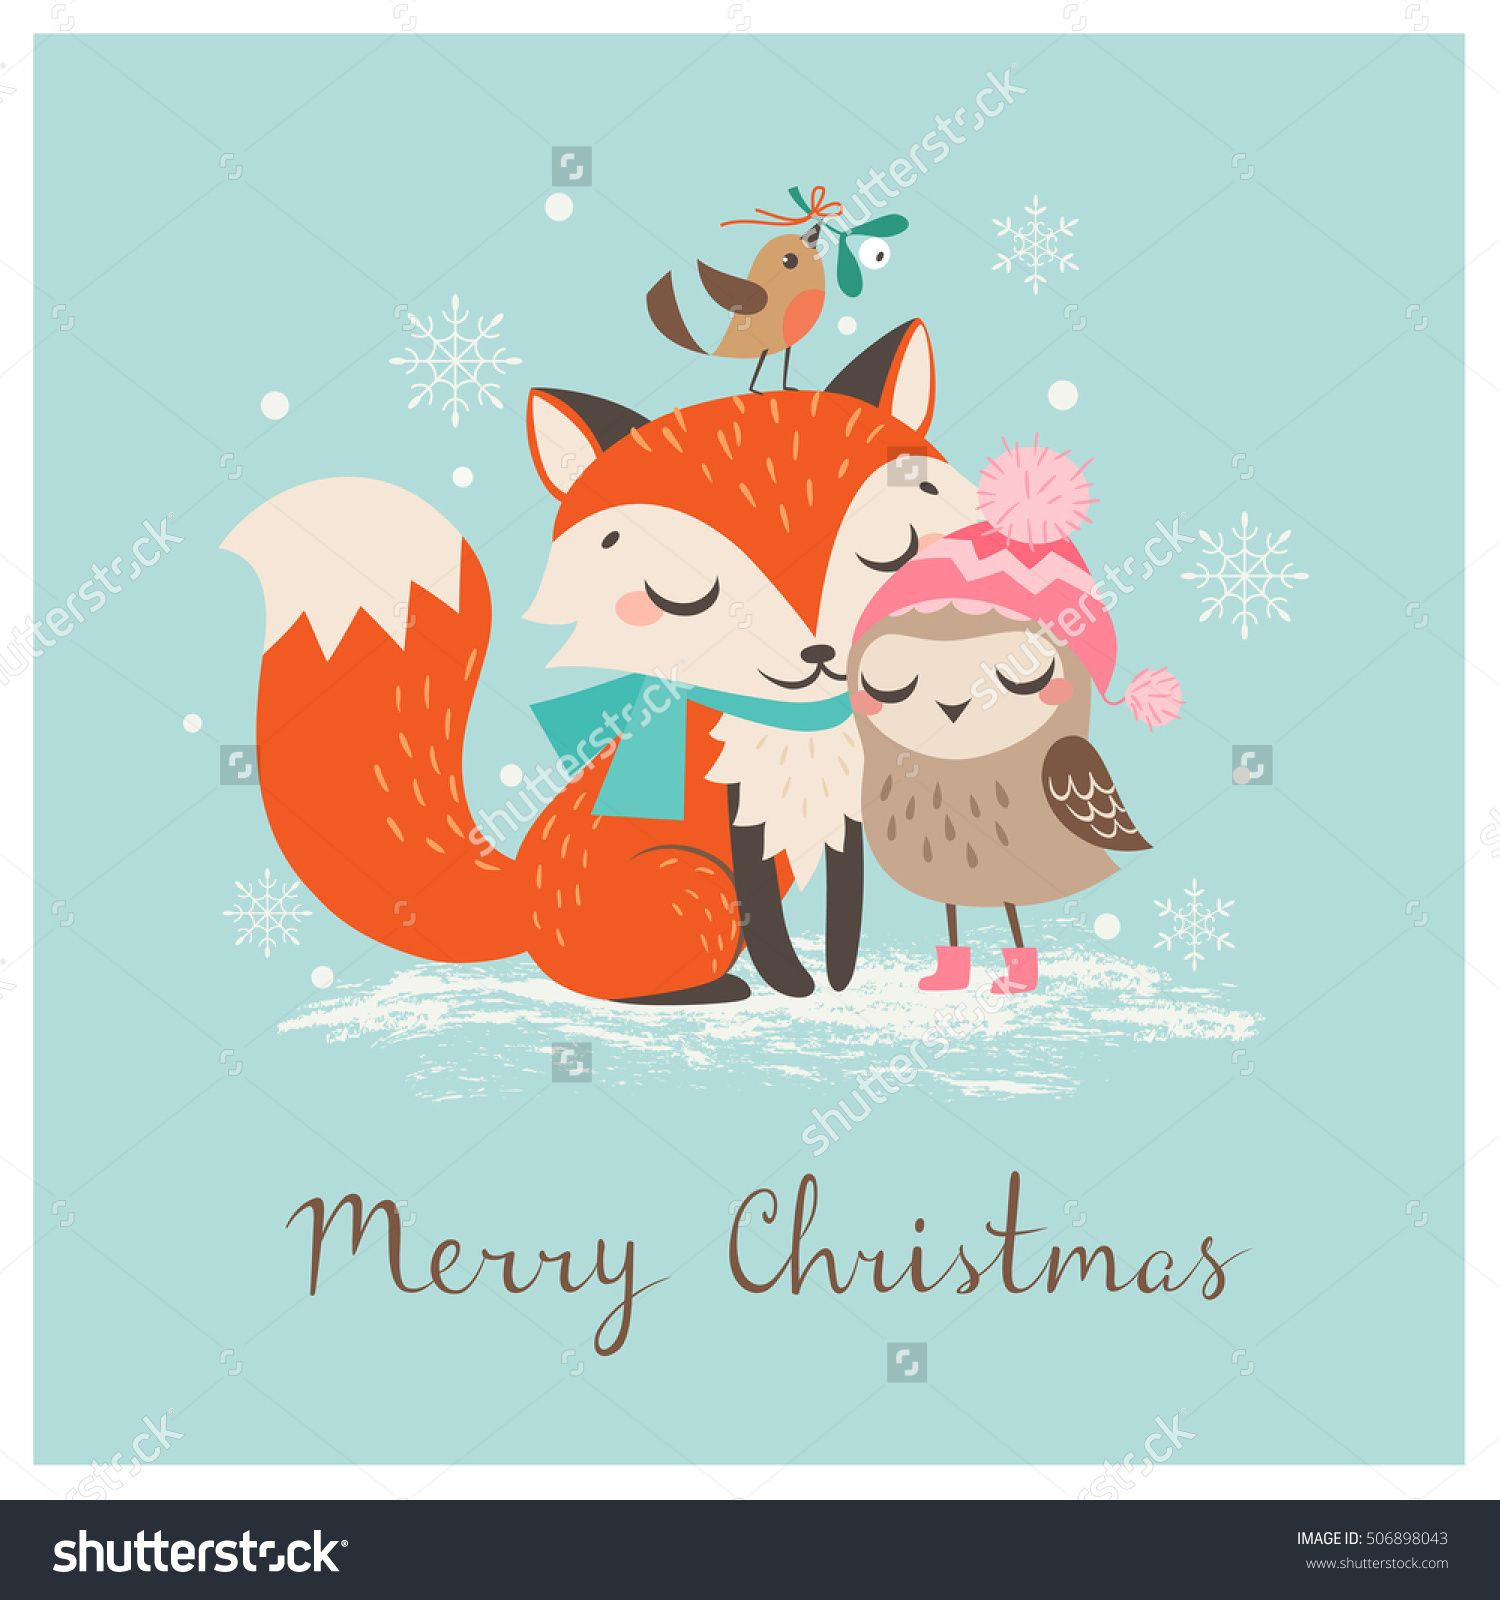 Cute Christmas Greeting Card With Fox And Owl Cards Pinterest